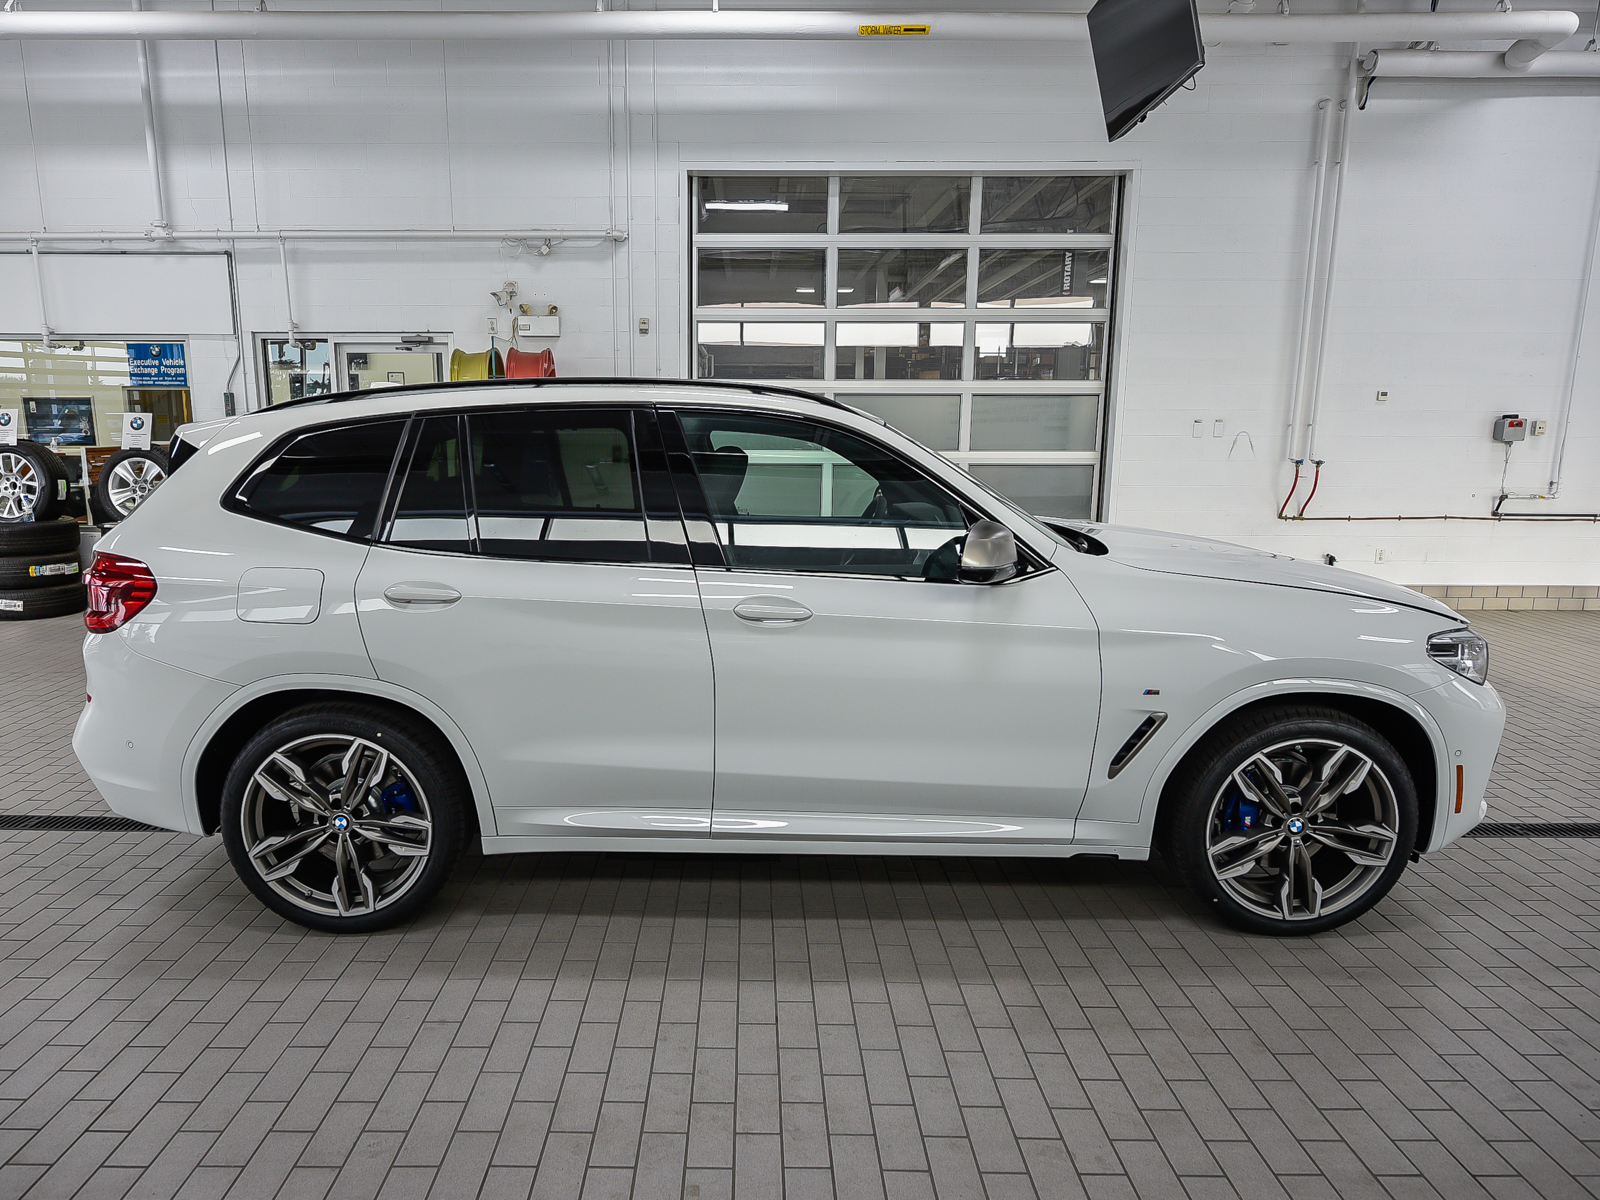 new 2019 bmw x3 m40i crossover in edmonton 19x32679. Black Bedroom Furniture Sets. Home Design Ideas